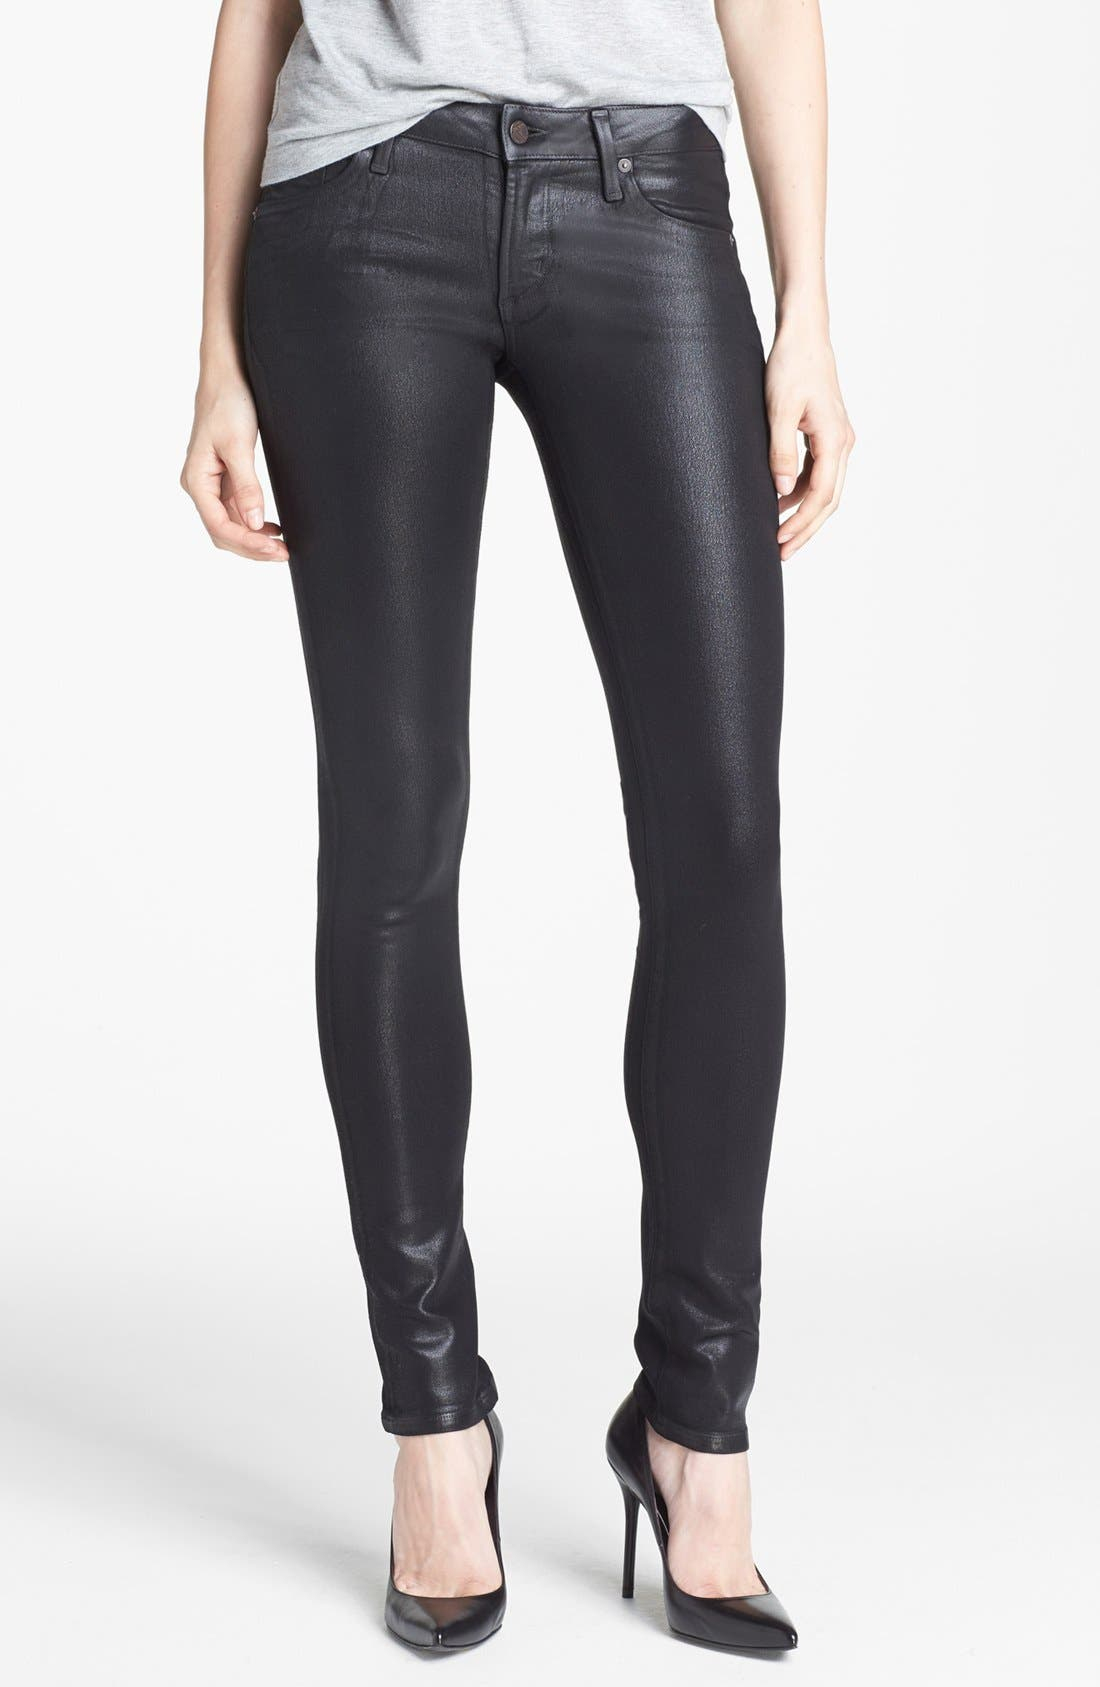 Main Image - Citizens of Humanity 'Racer' Low Rise Coated Jeans (Black Coated)